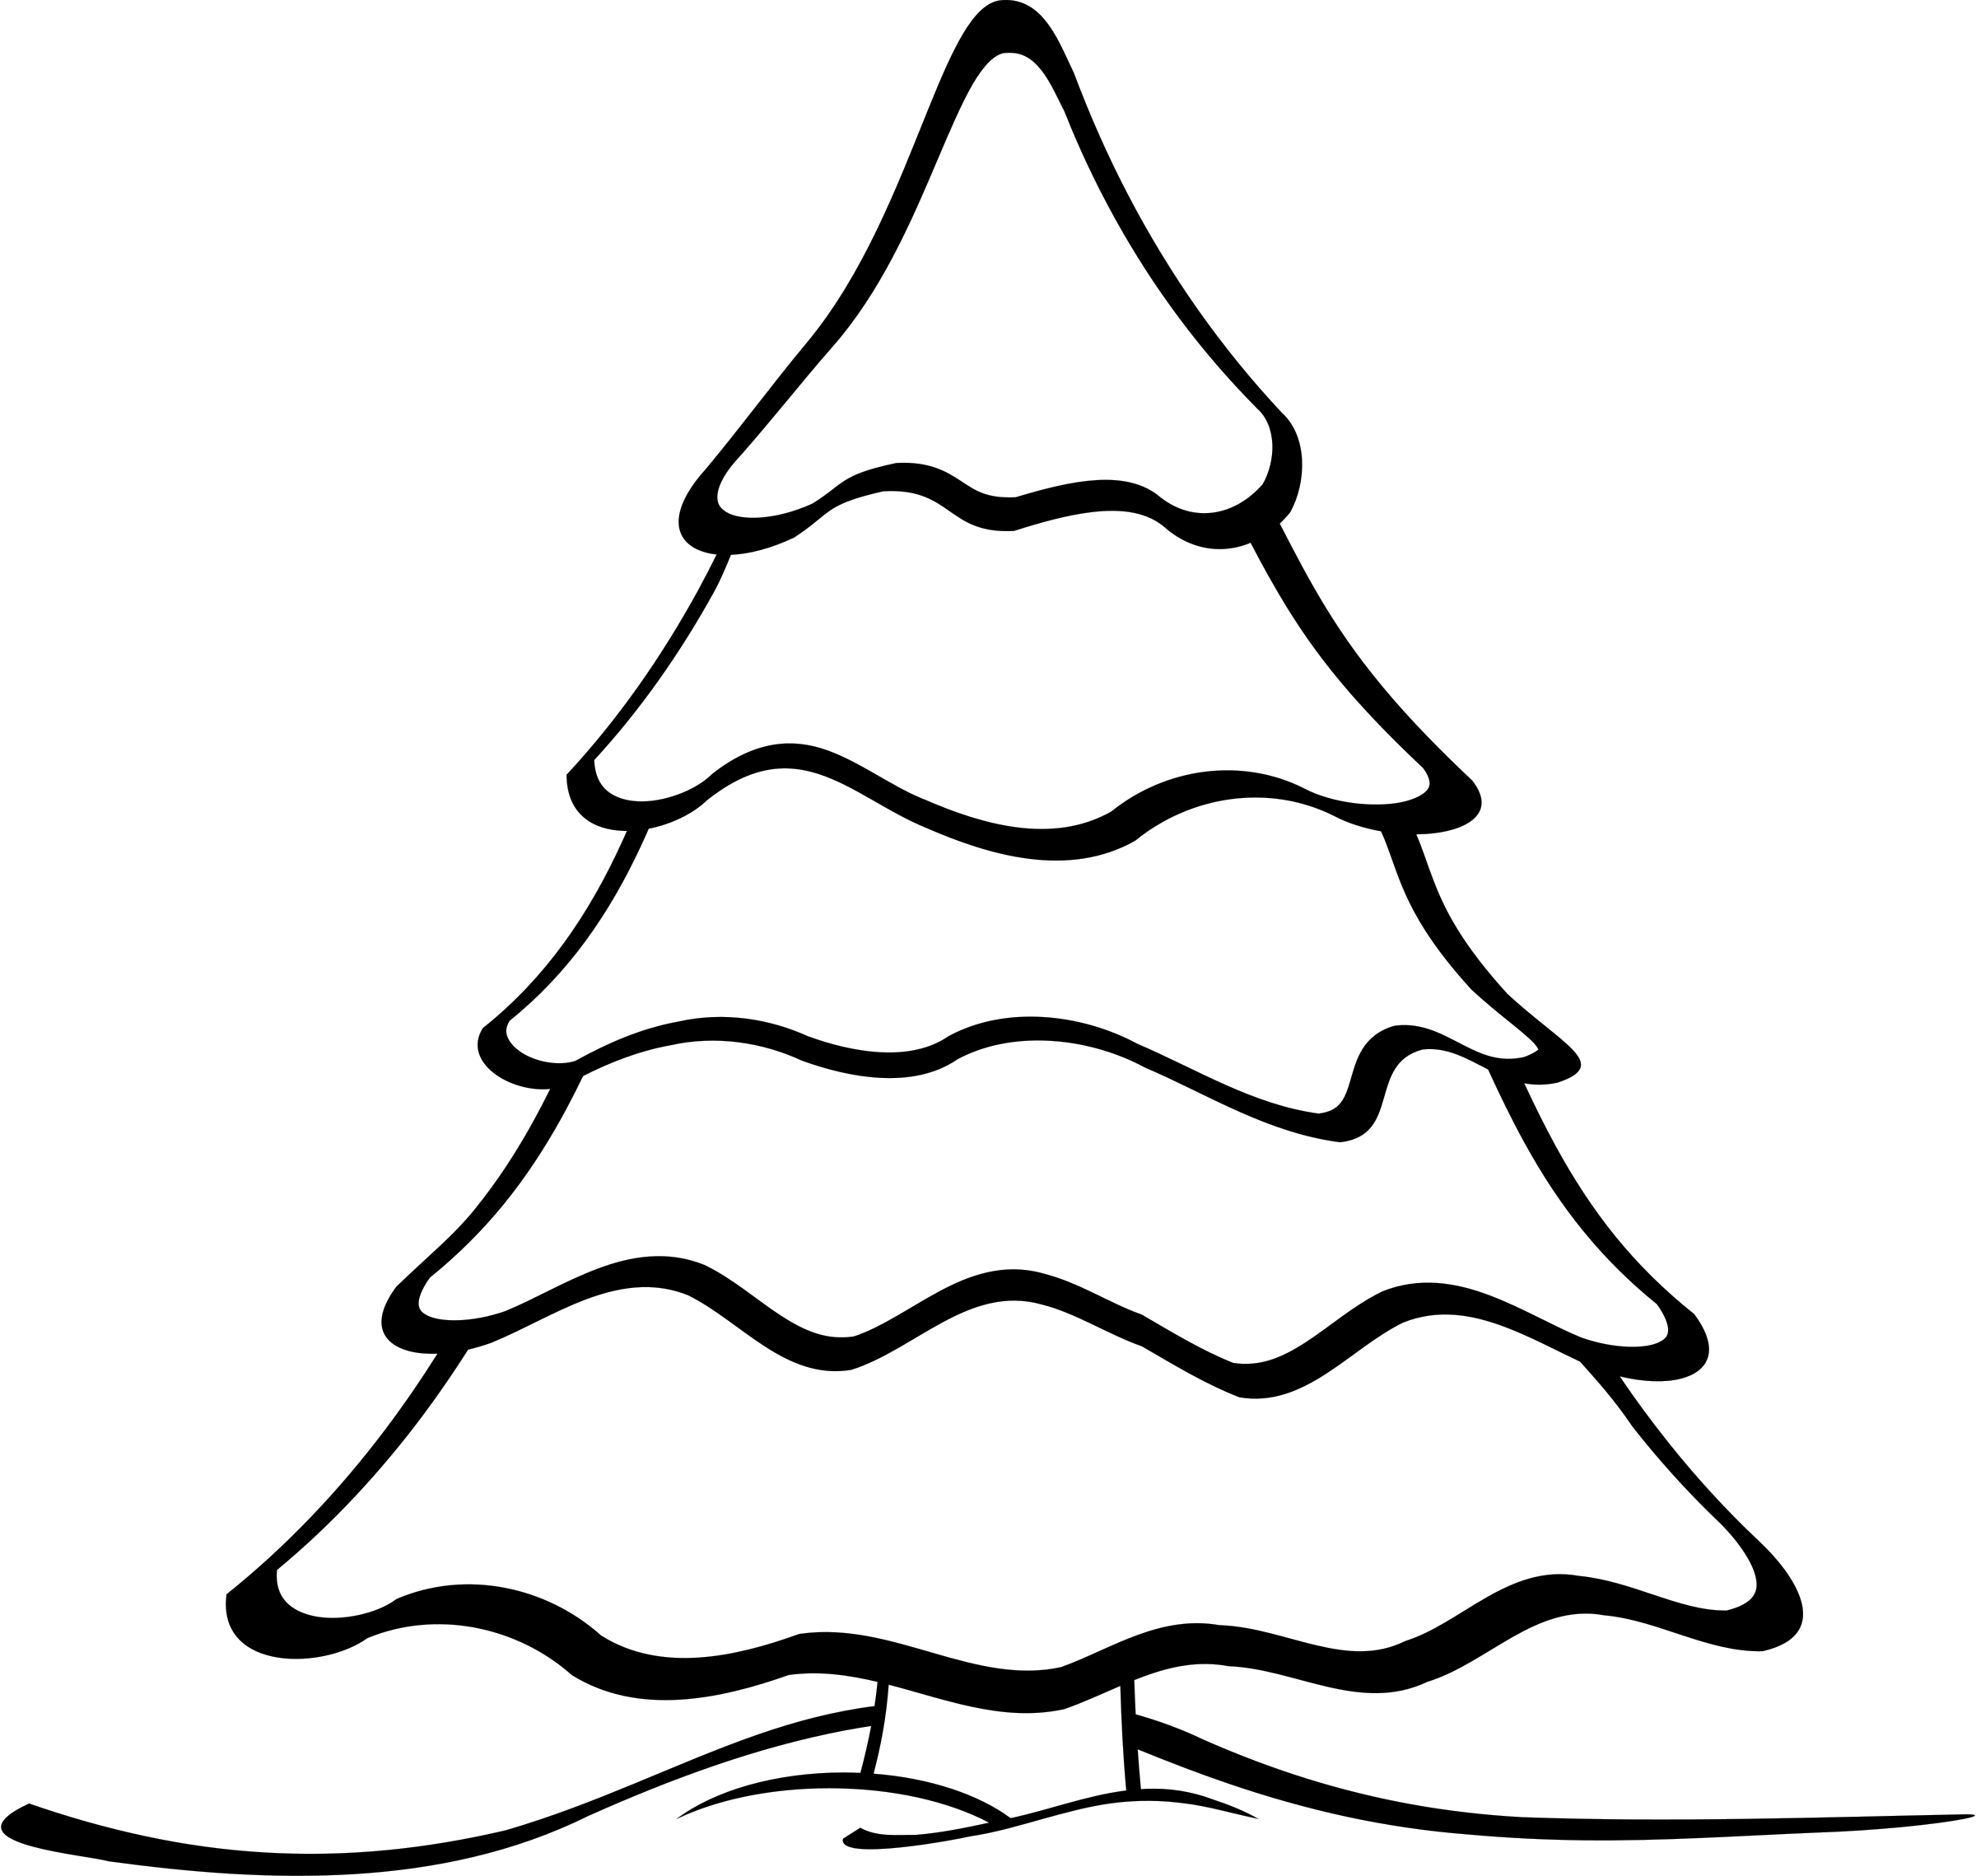 Cool clipart christmas. Tree outline find craft